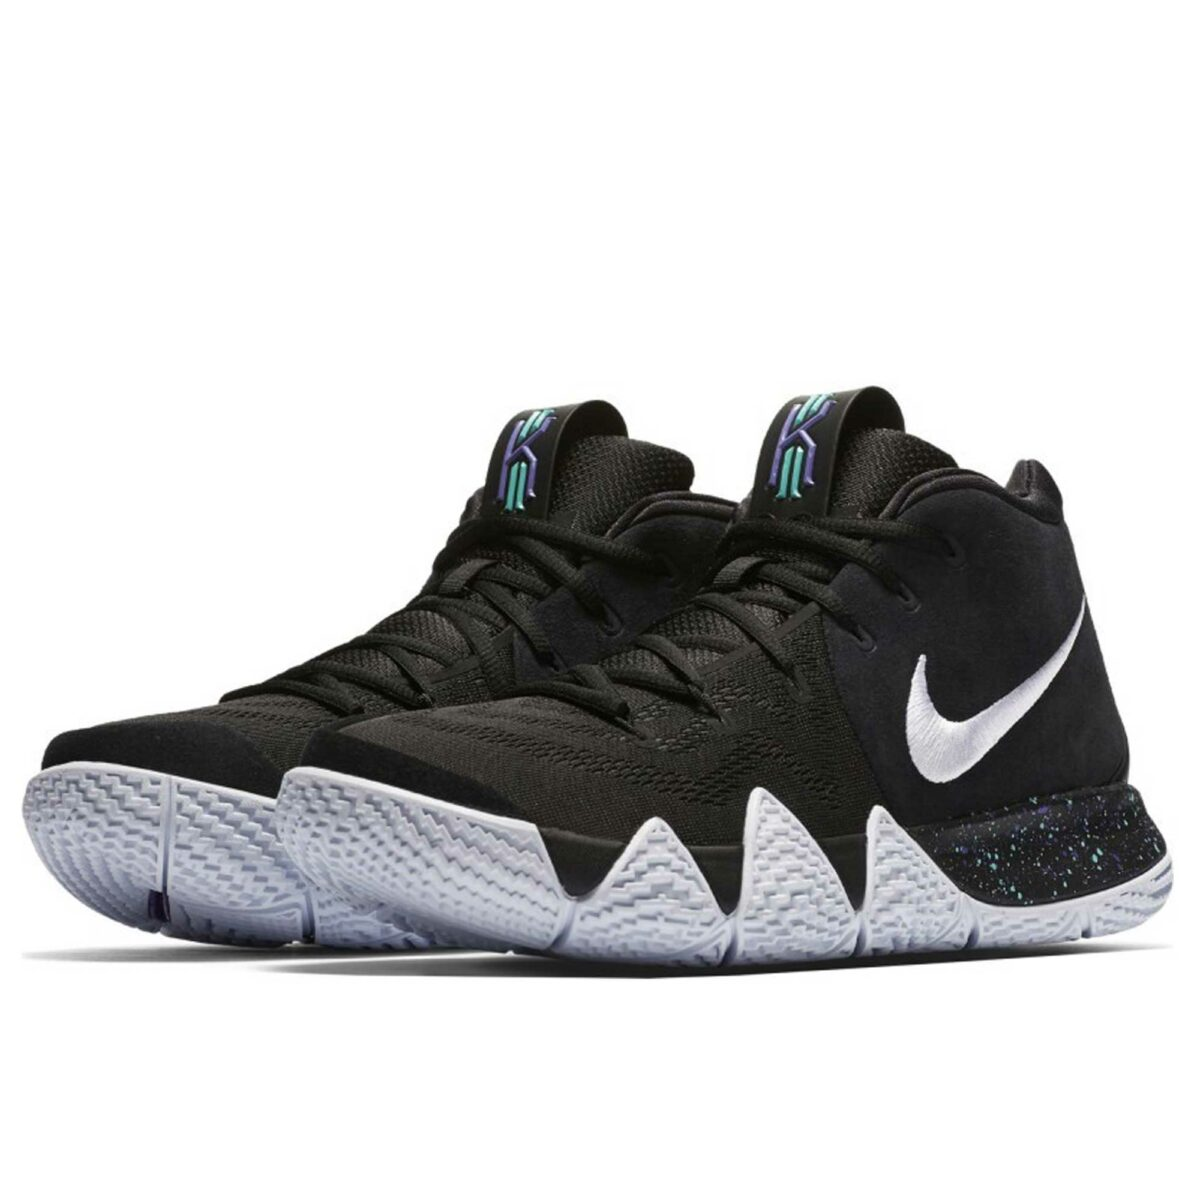 nike Kyrie 4 black white купить